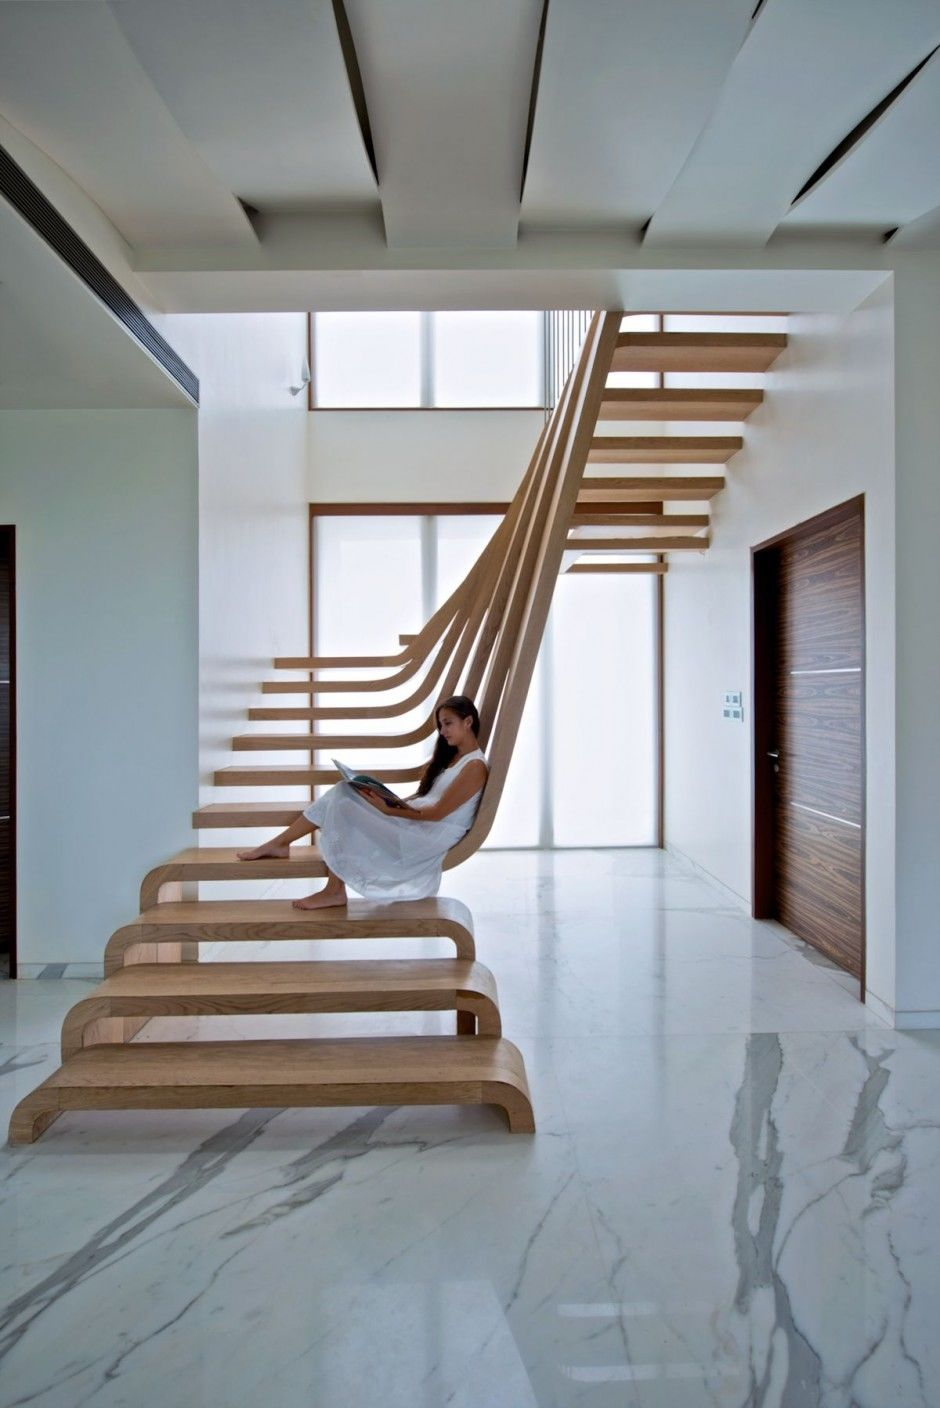 Modern staircase pictures photos and images for facebook for Escalier interieur moderne